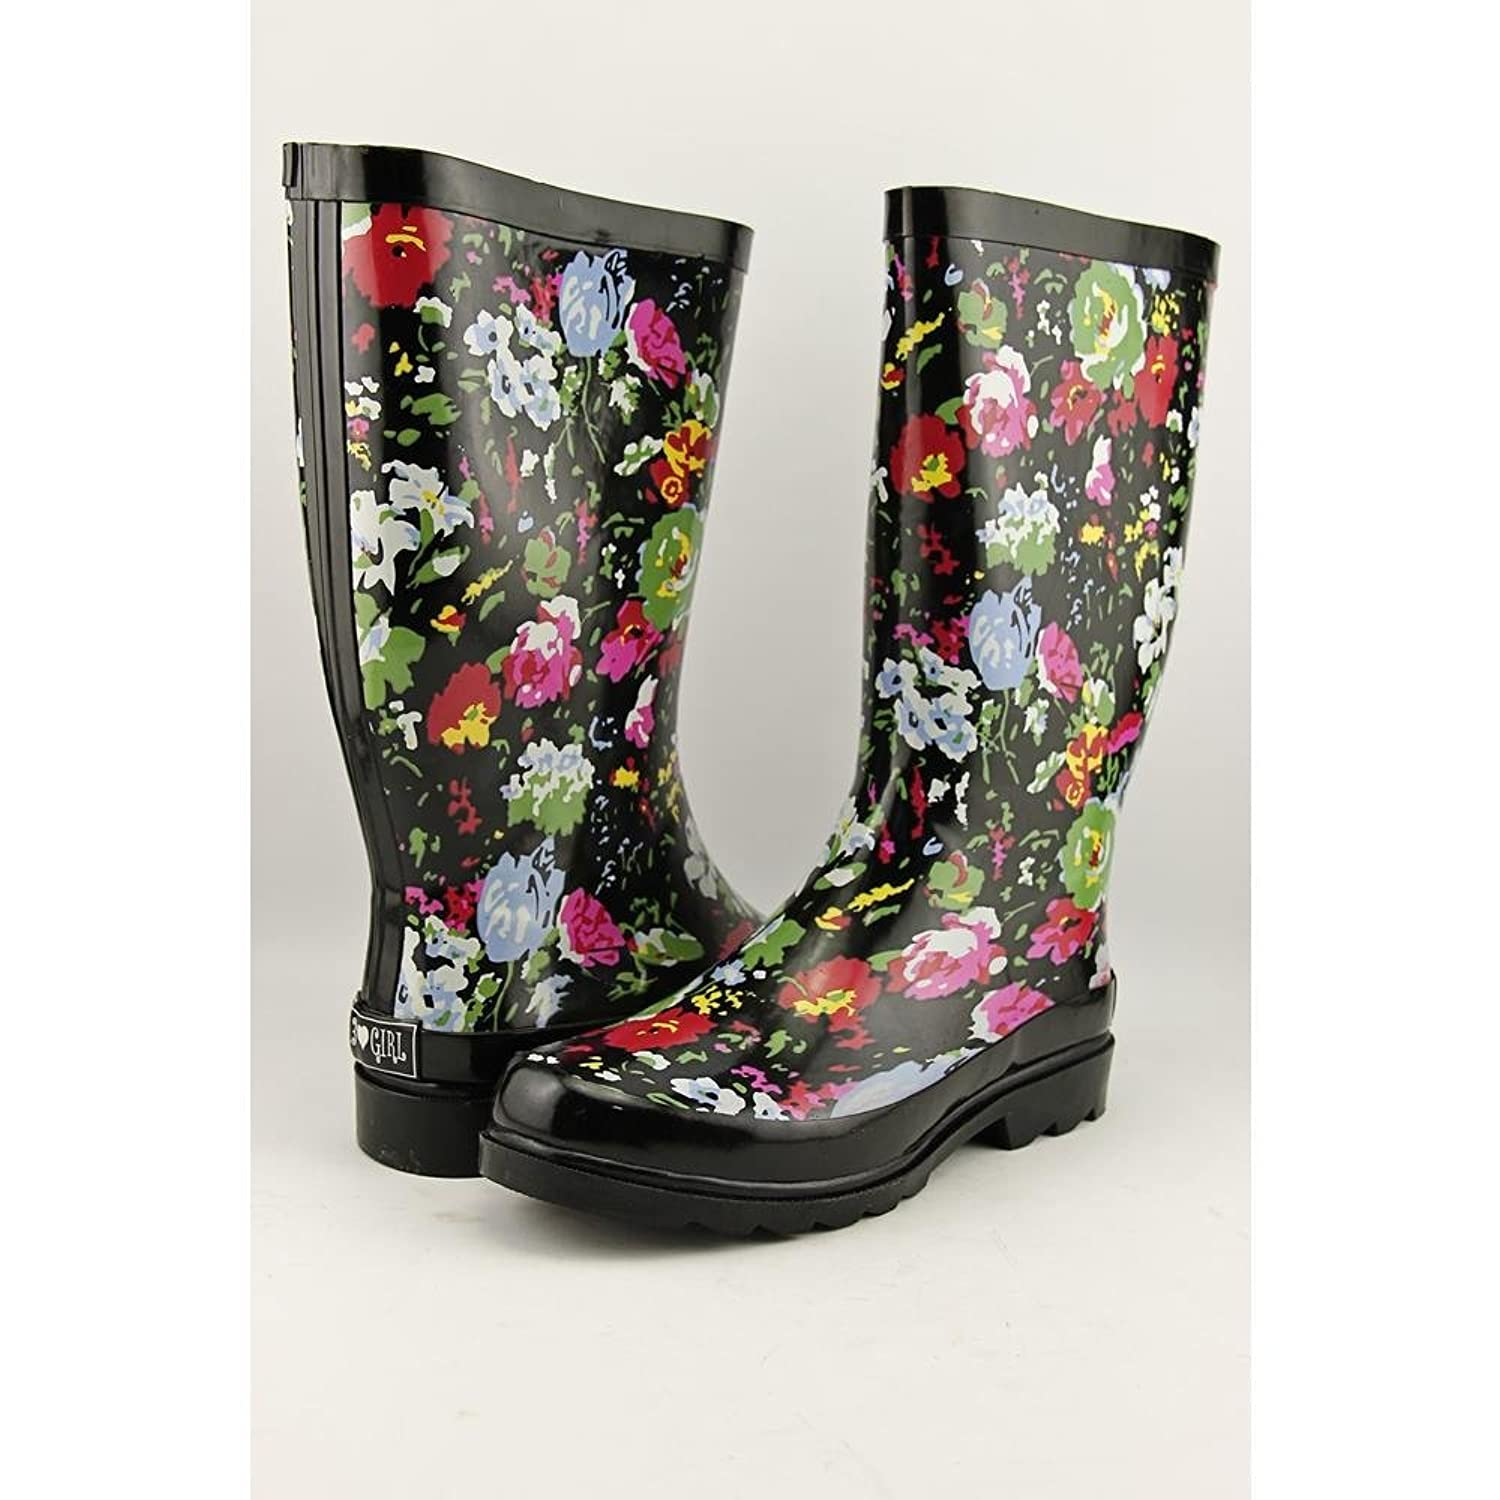 143 Girl Talory Women US 9 Multi Color Rain Boot